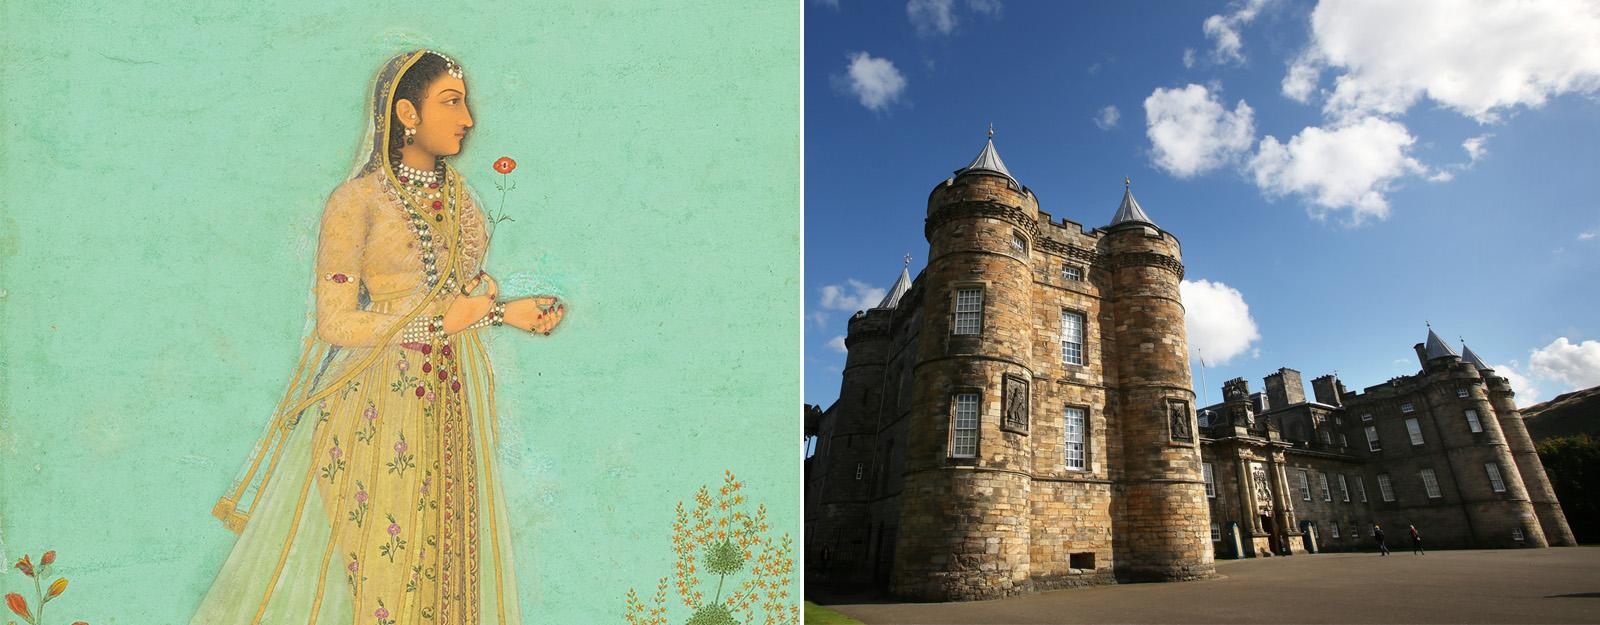 Eastern Encounters & Palace of Holyroodhouse